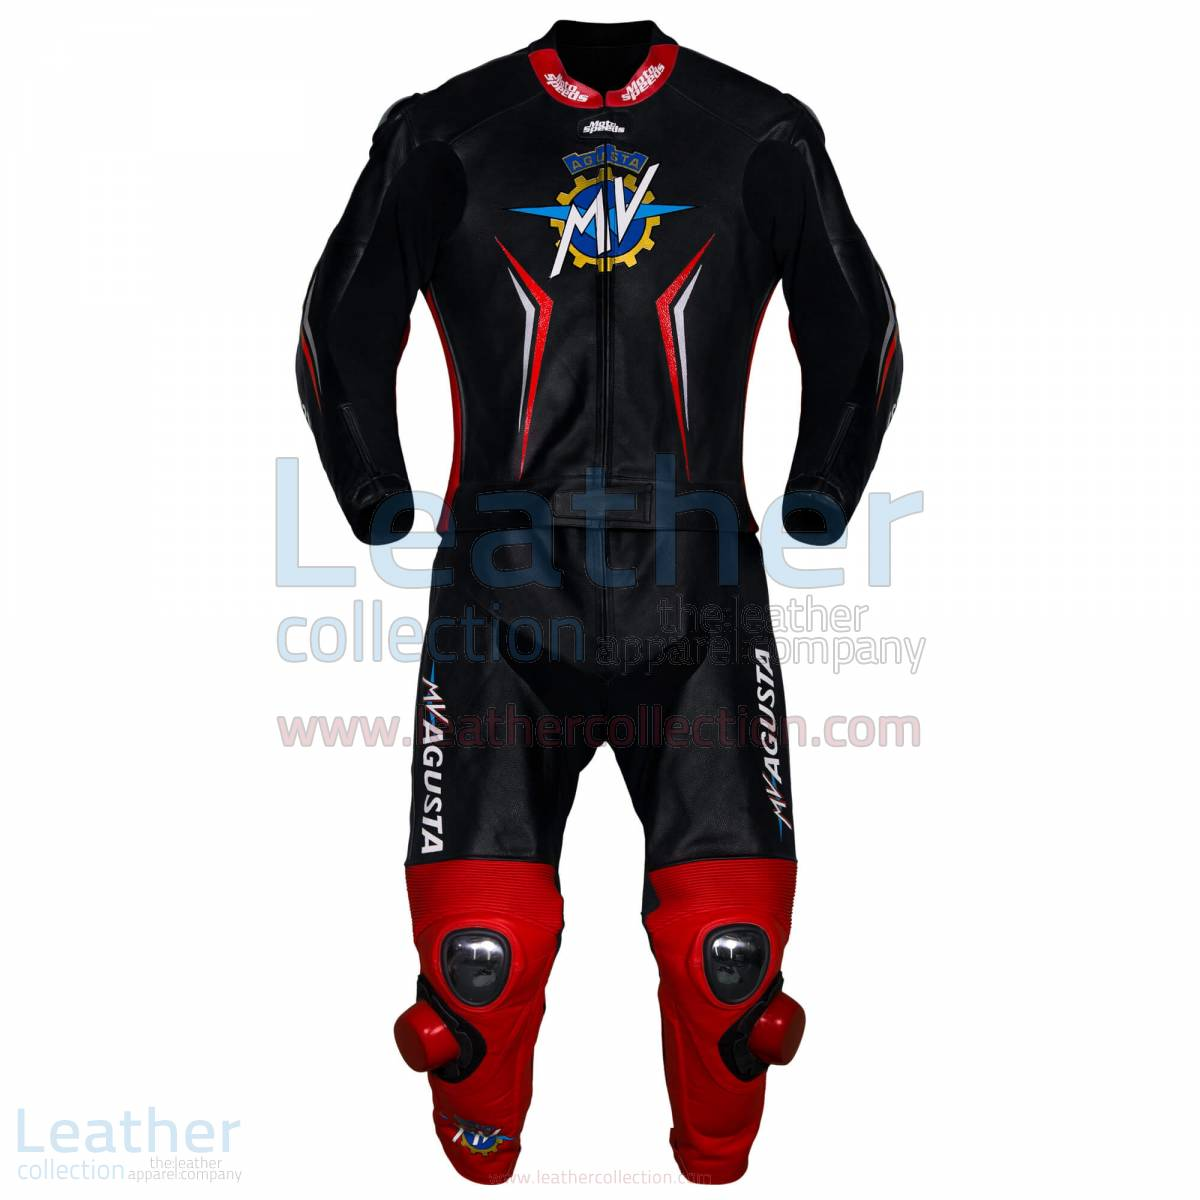 MV Agusta 2017 Motorcycle Leather Suit – MV Agusta Suit